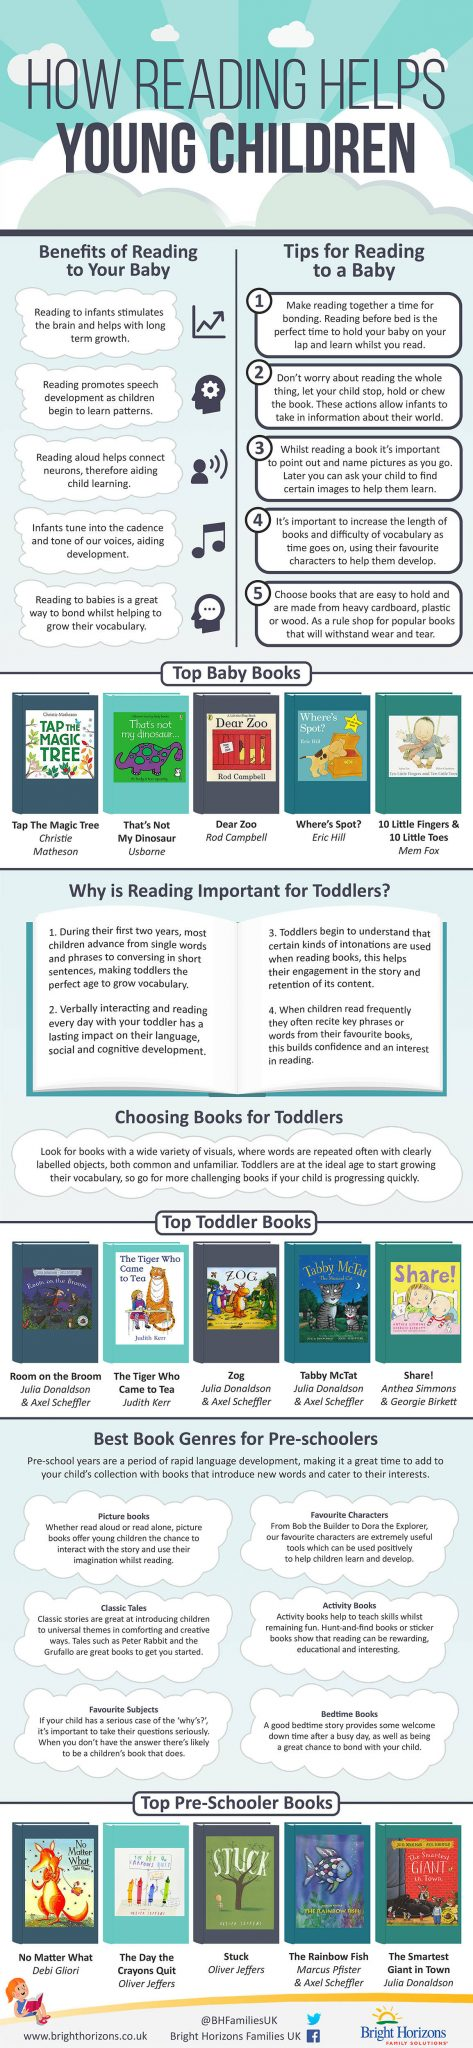 reading helps young children